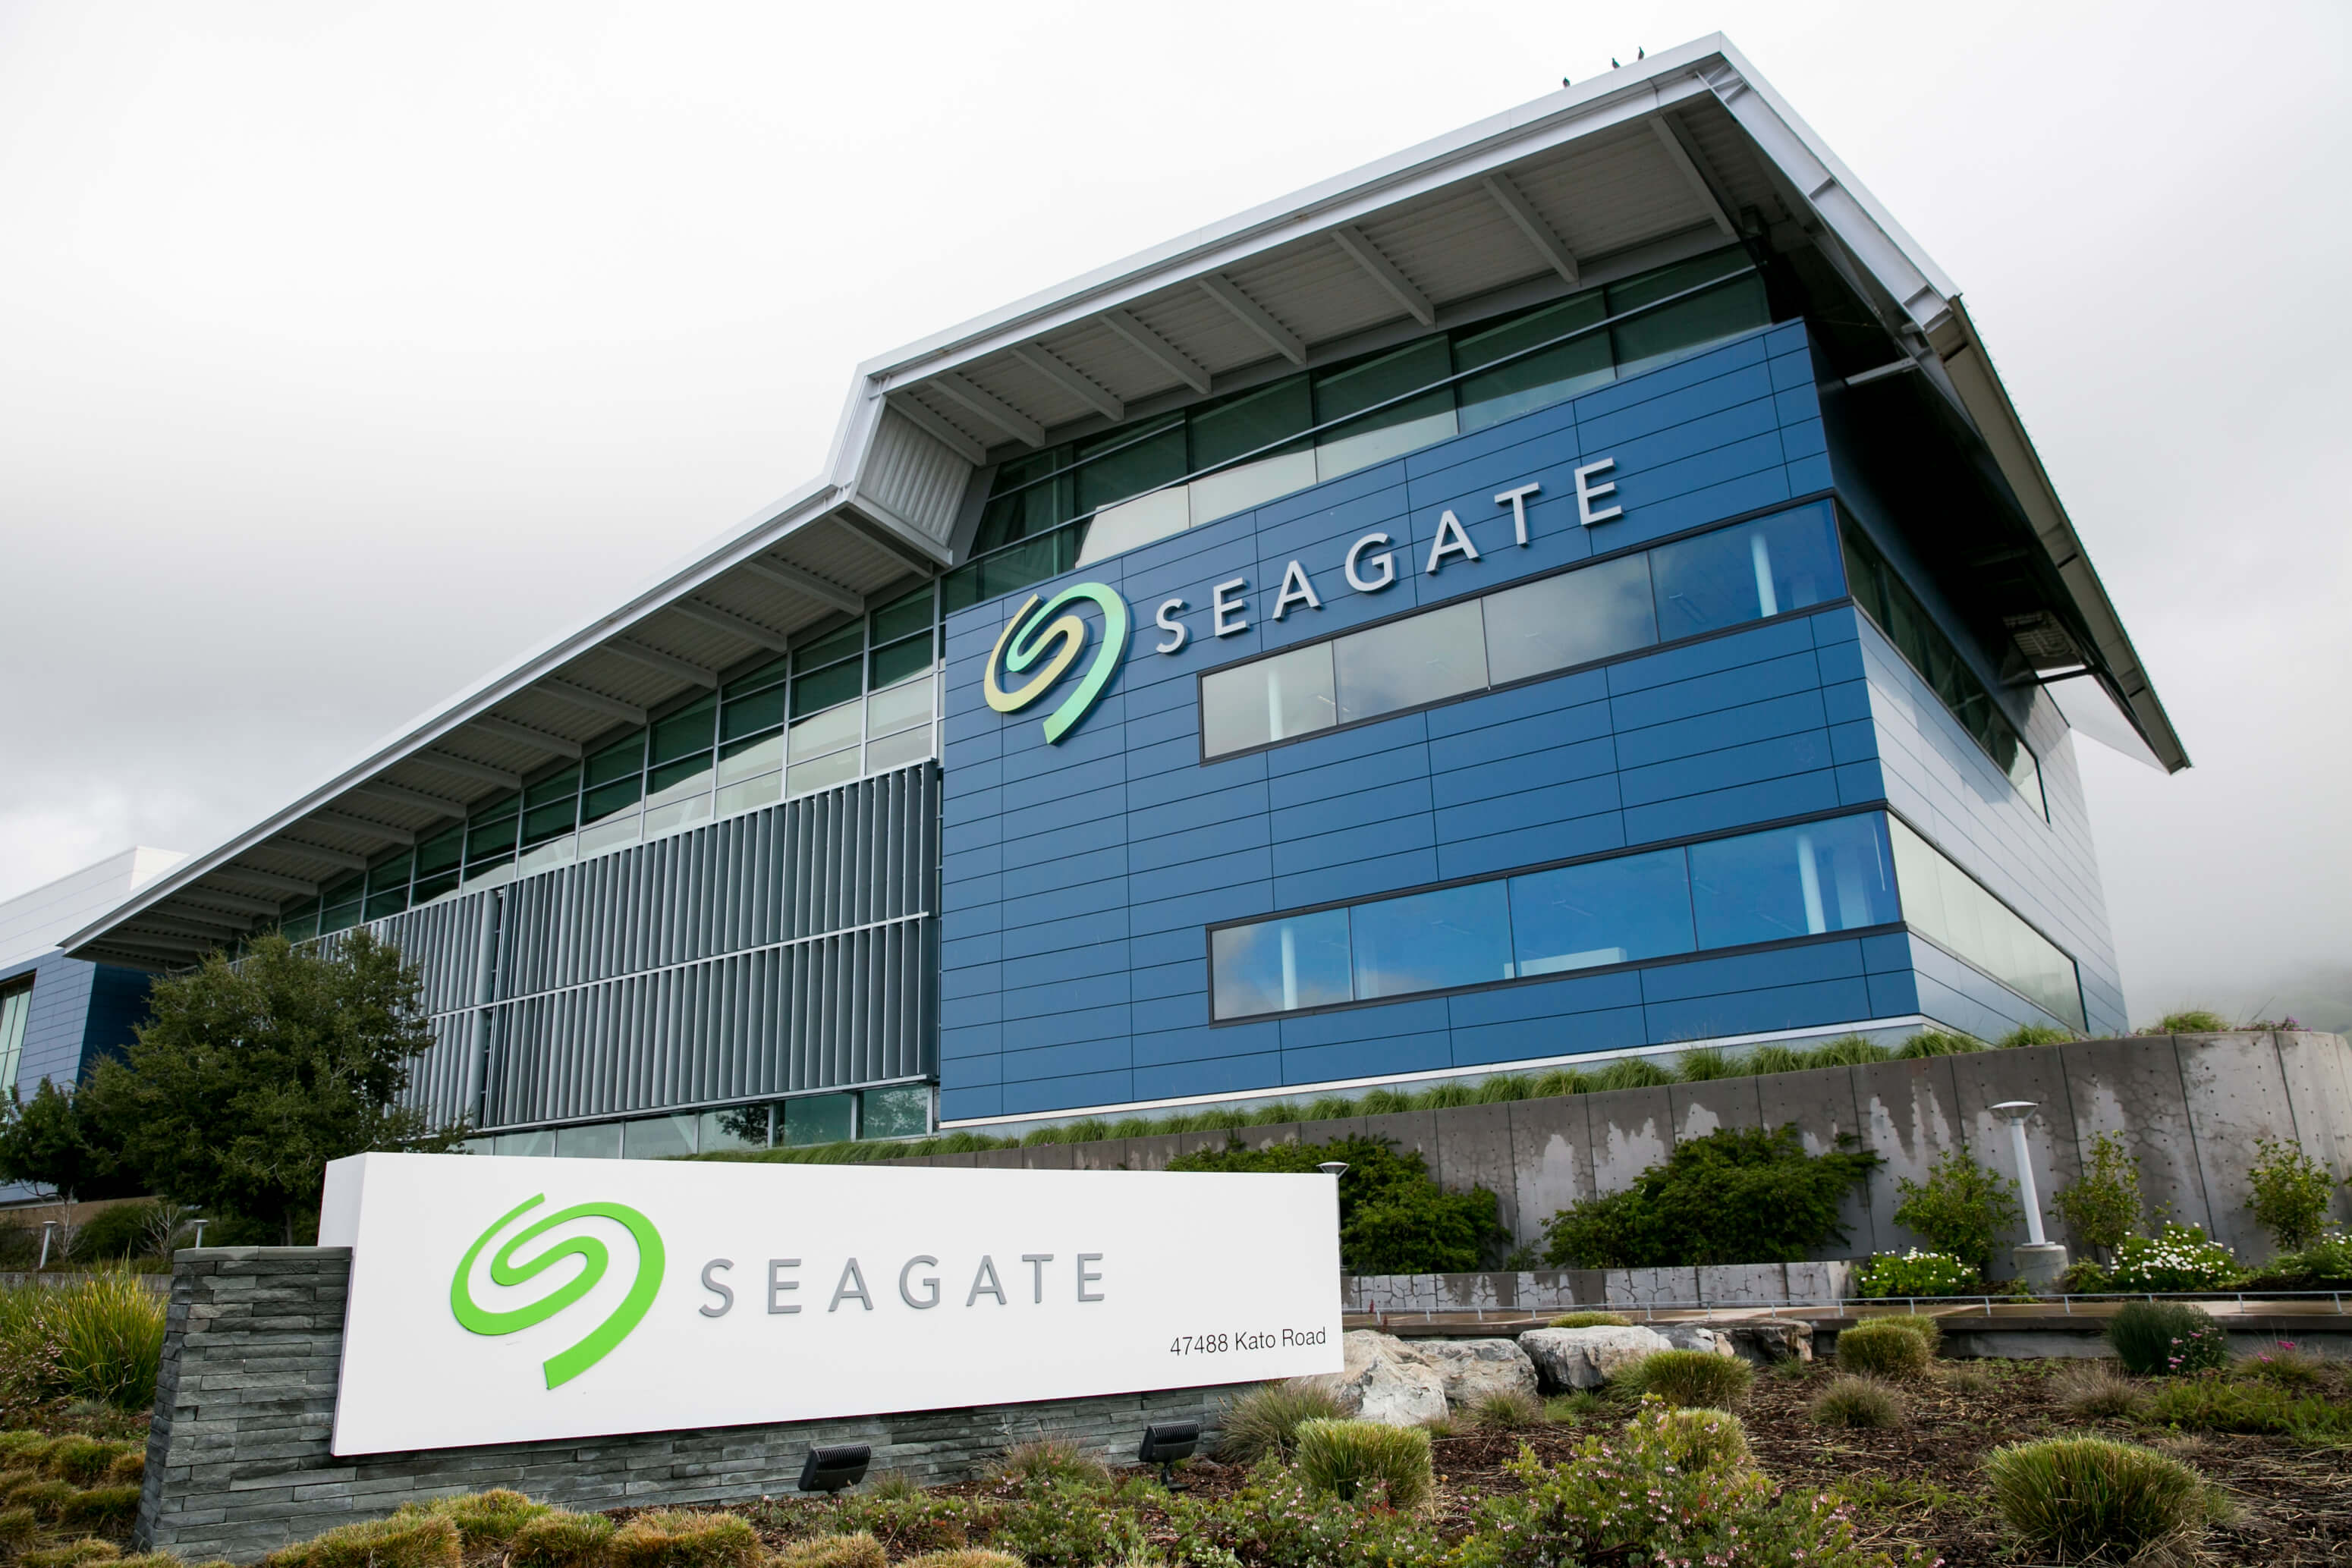 Seagate reveals storage roadmap showing 20TB drives by 2020